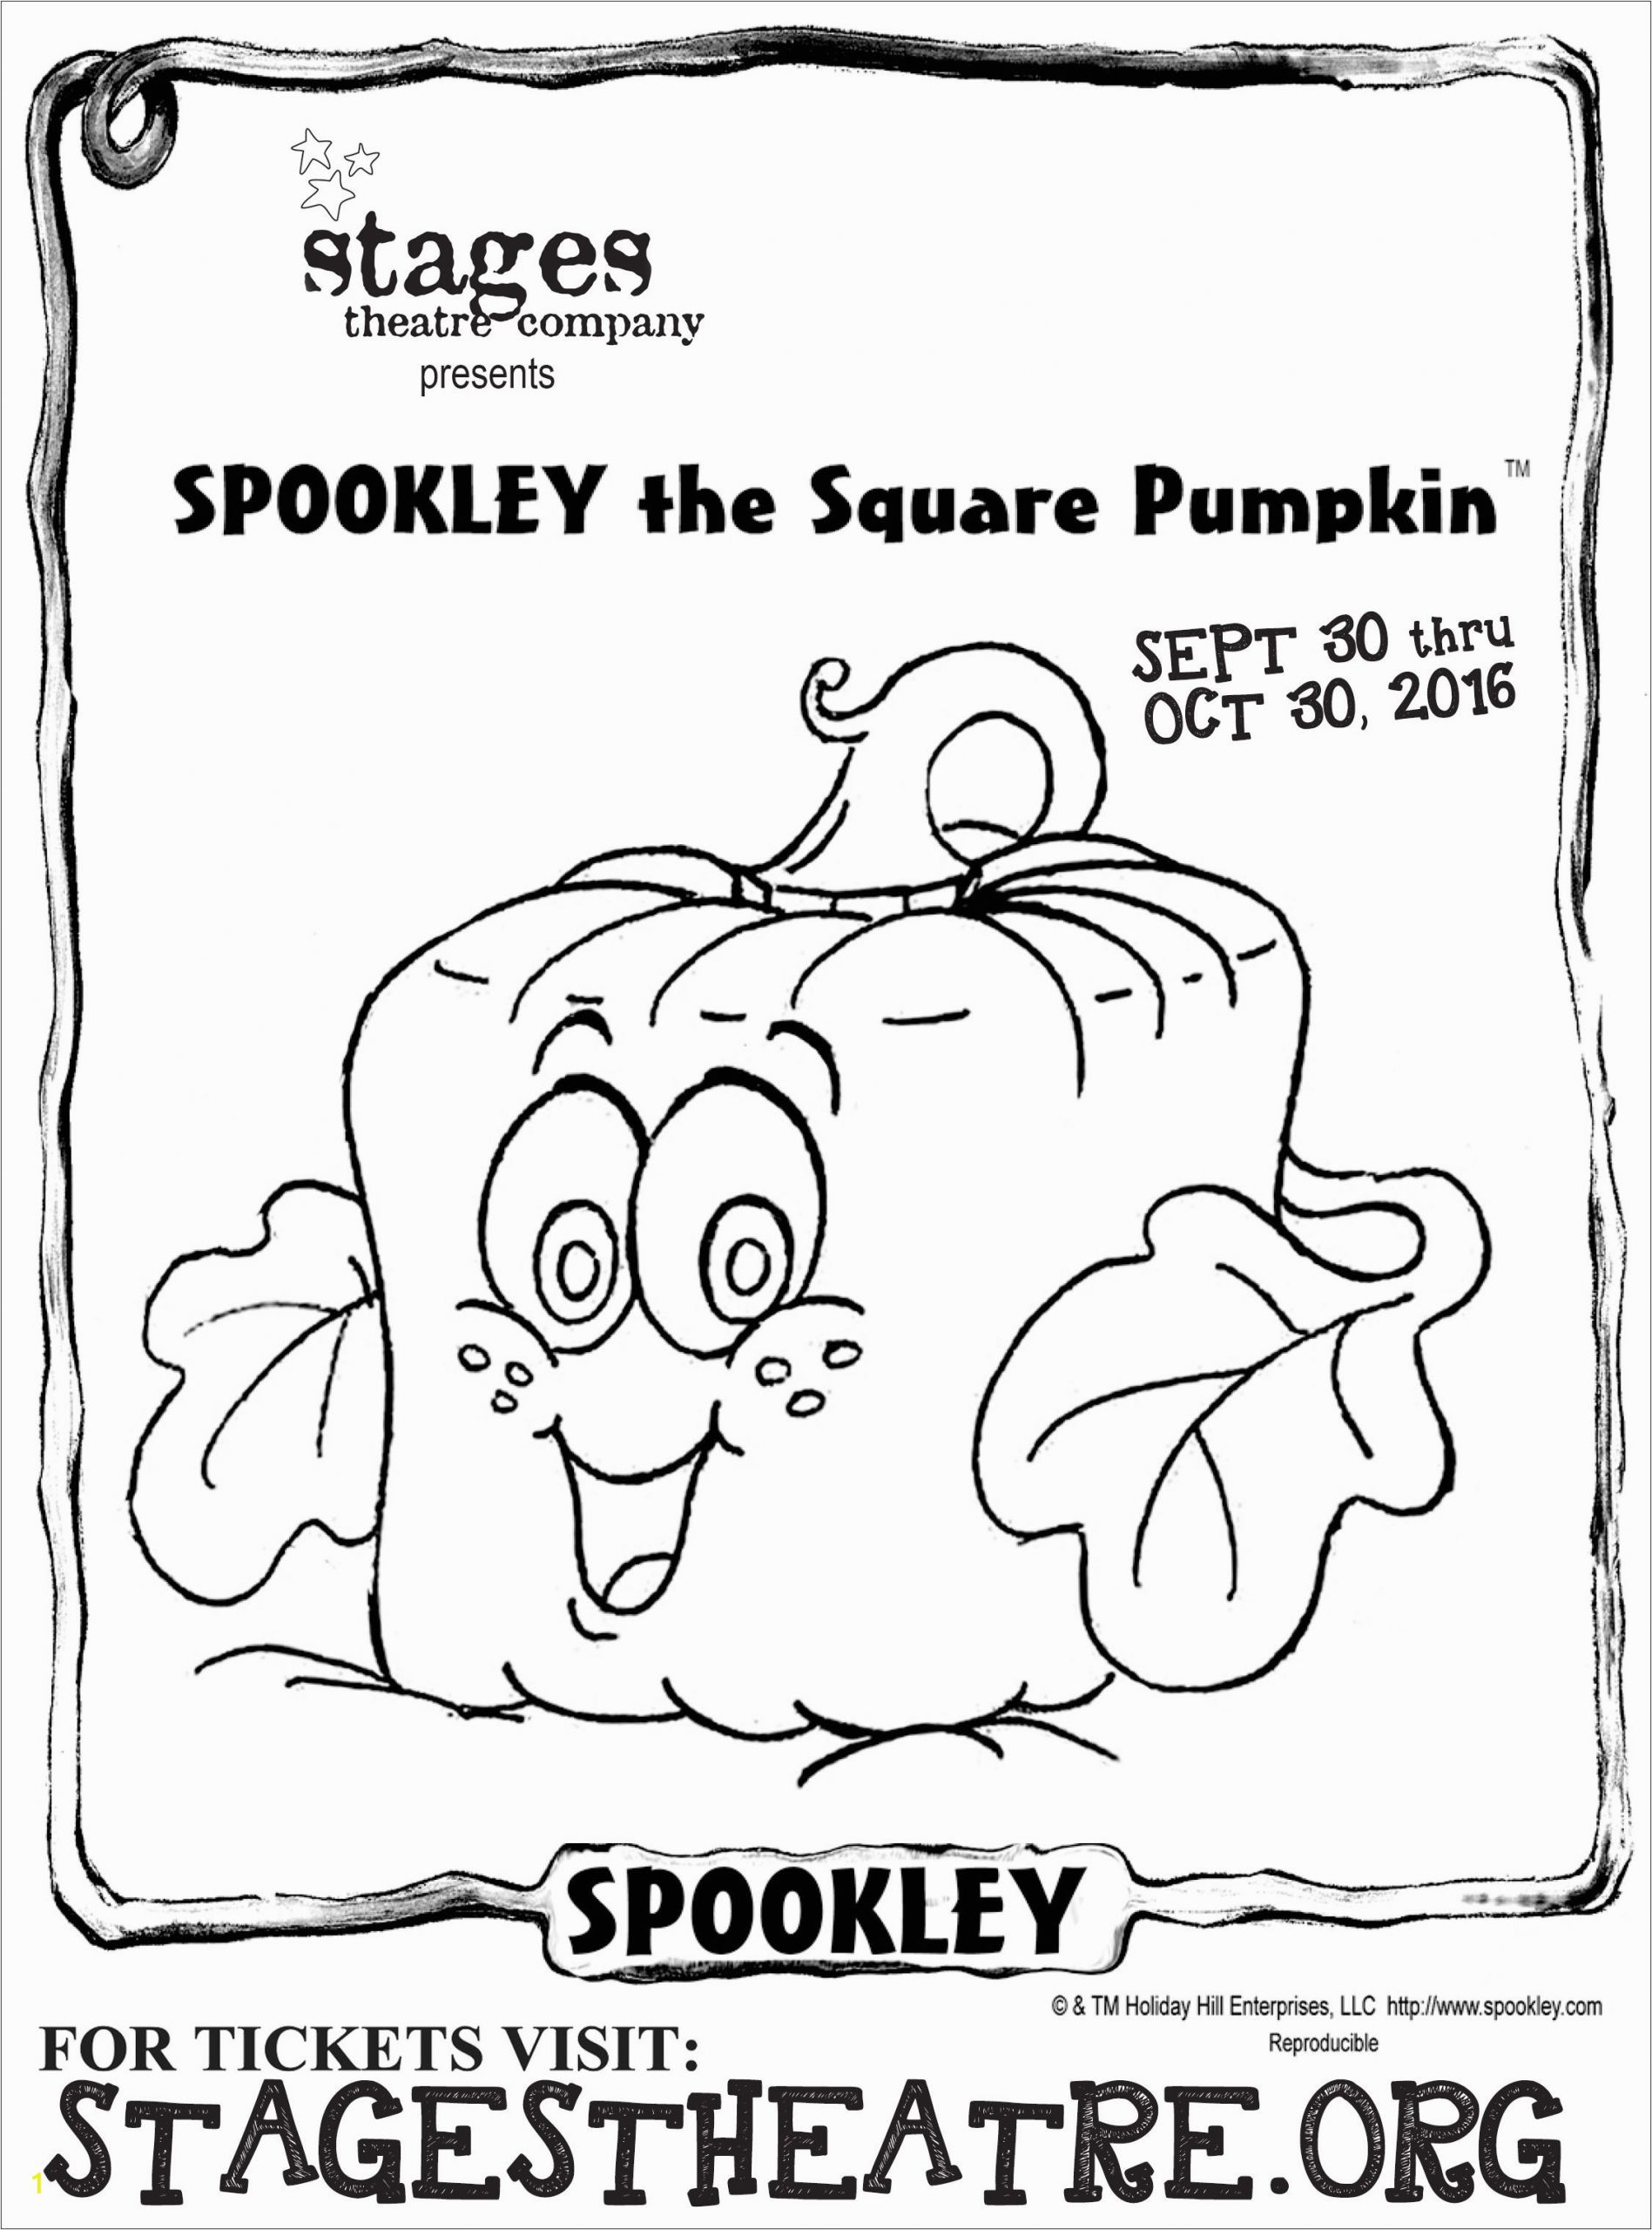 Spookley the Square Pumpkin Coloring Page Coloring Sheet for Spookley the Square Pumpkin